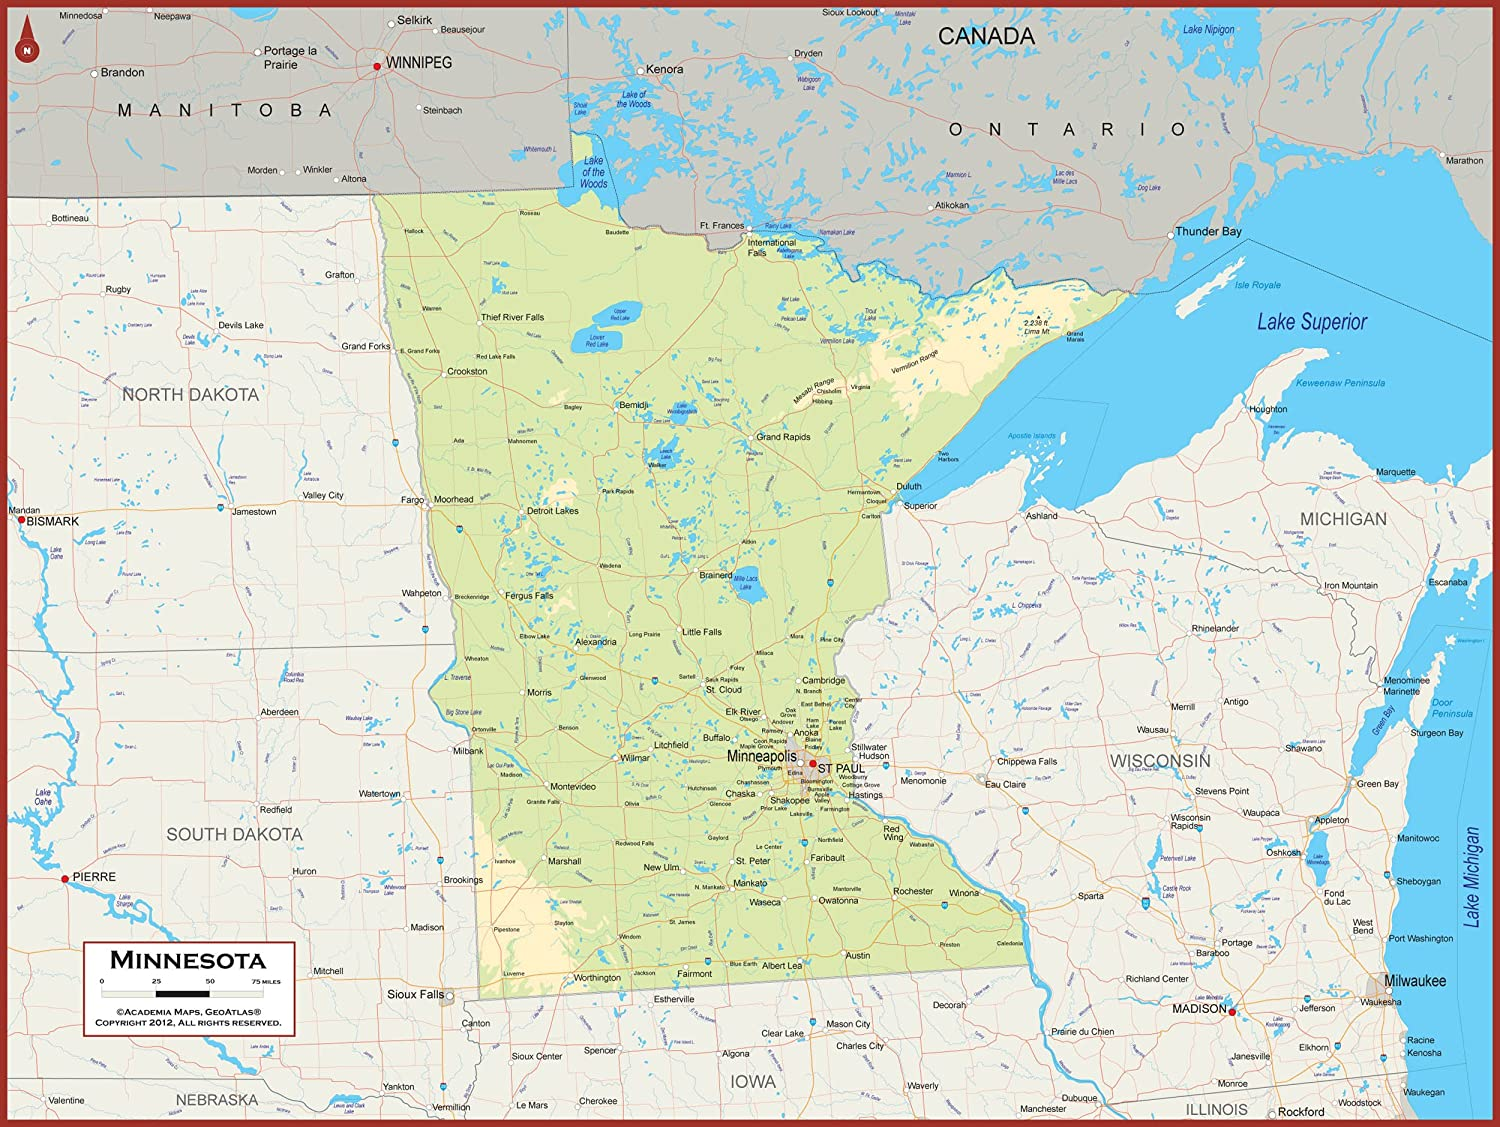 Amazon.com : Academia Maps - Minnesota State Wall Map - Fully ...